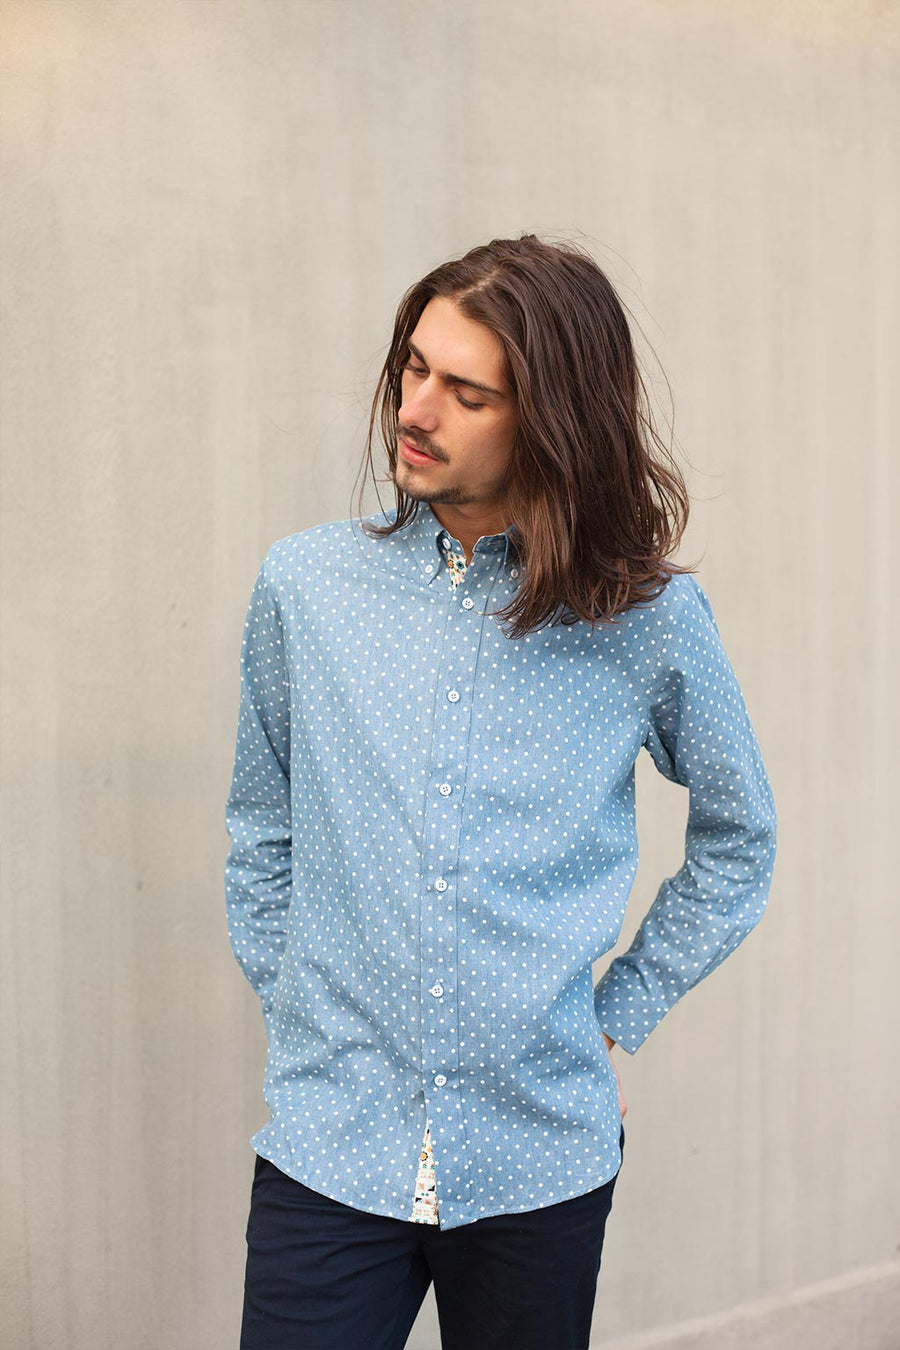 Sample of Relaxed Oxford Shirt in Chambray Dot Print